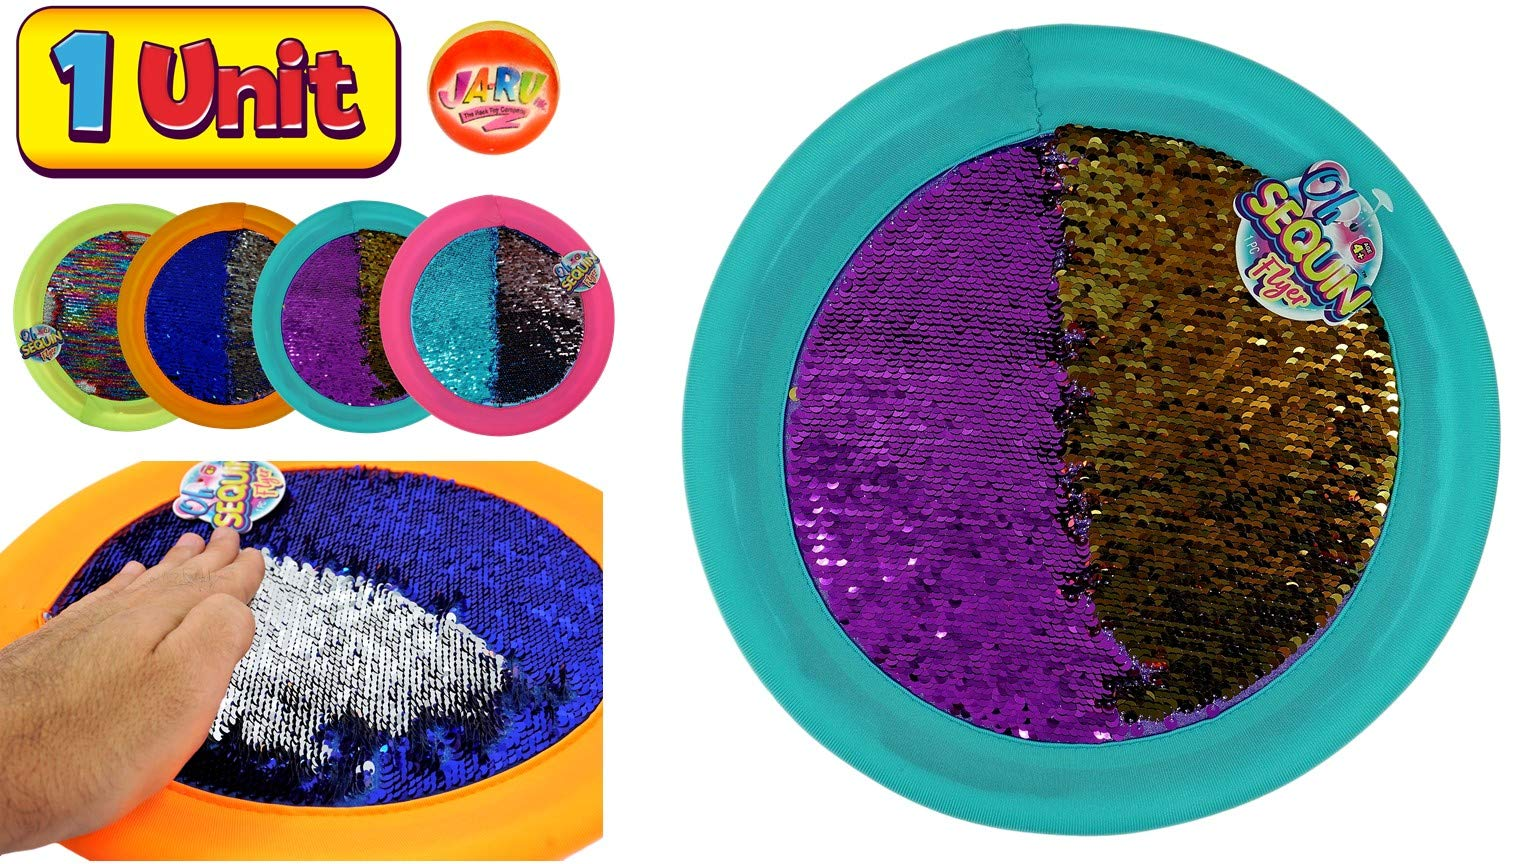 JA-RU Soft Flying Disc Wet or Dry Safe 11'' (1 Pack) Frisbees with Sequin Shimmery Material, Kids & Adults Toys Games for Beach Lake Pool Playground & Outdoors Party Plus 1 Bouncy Ball. 4637-1P by JA-RU